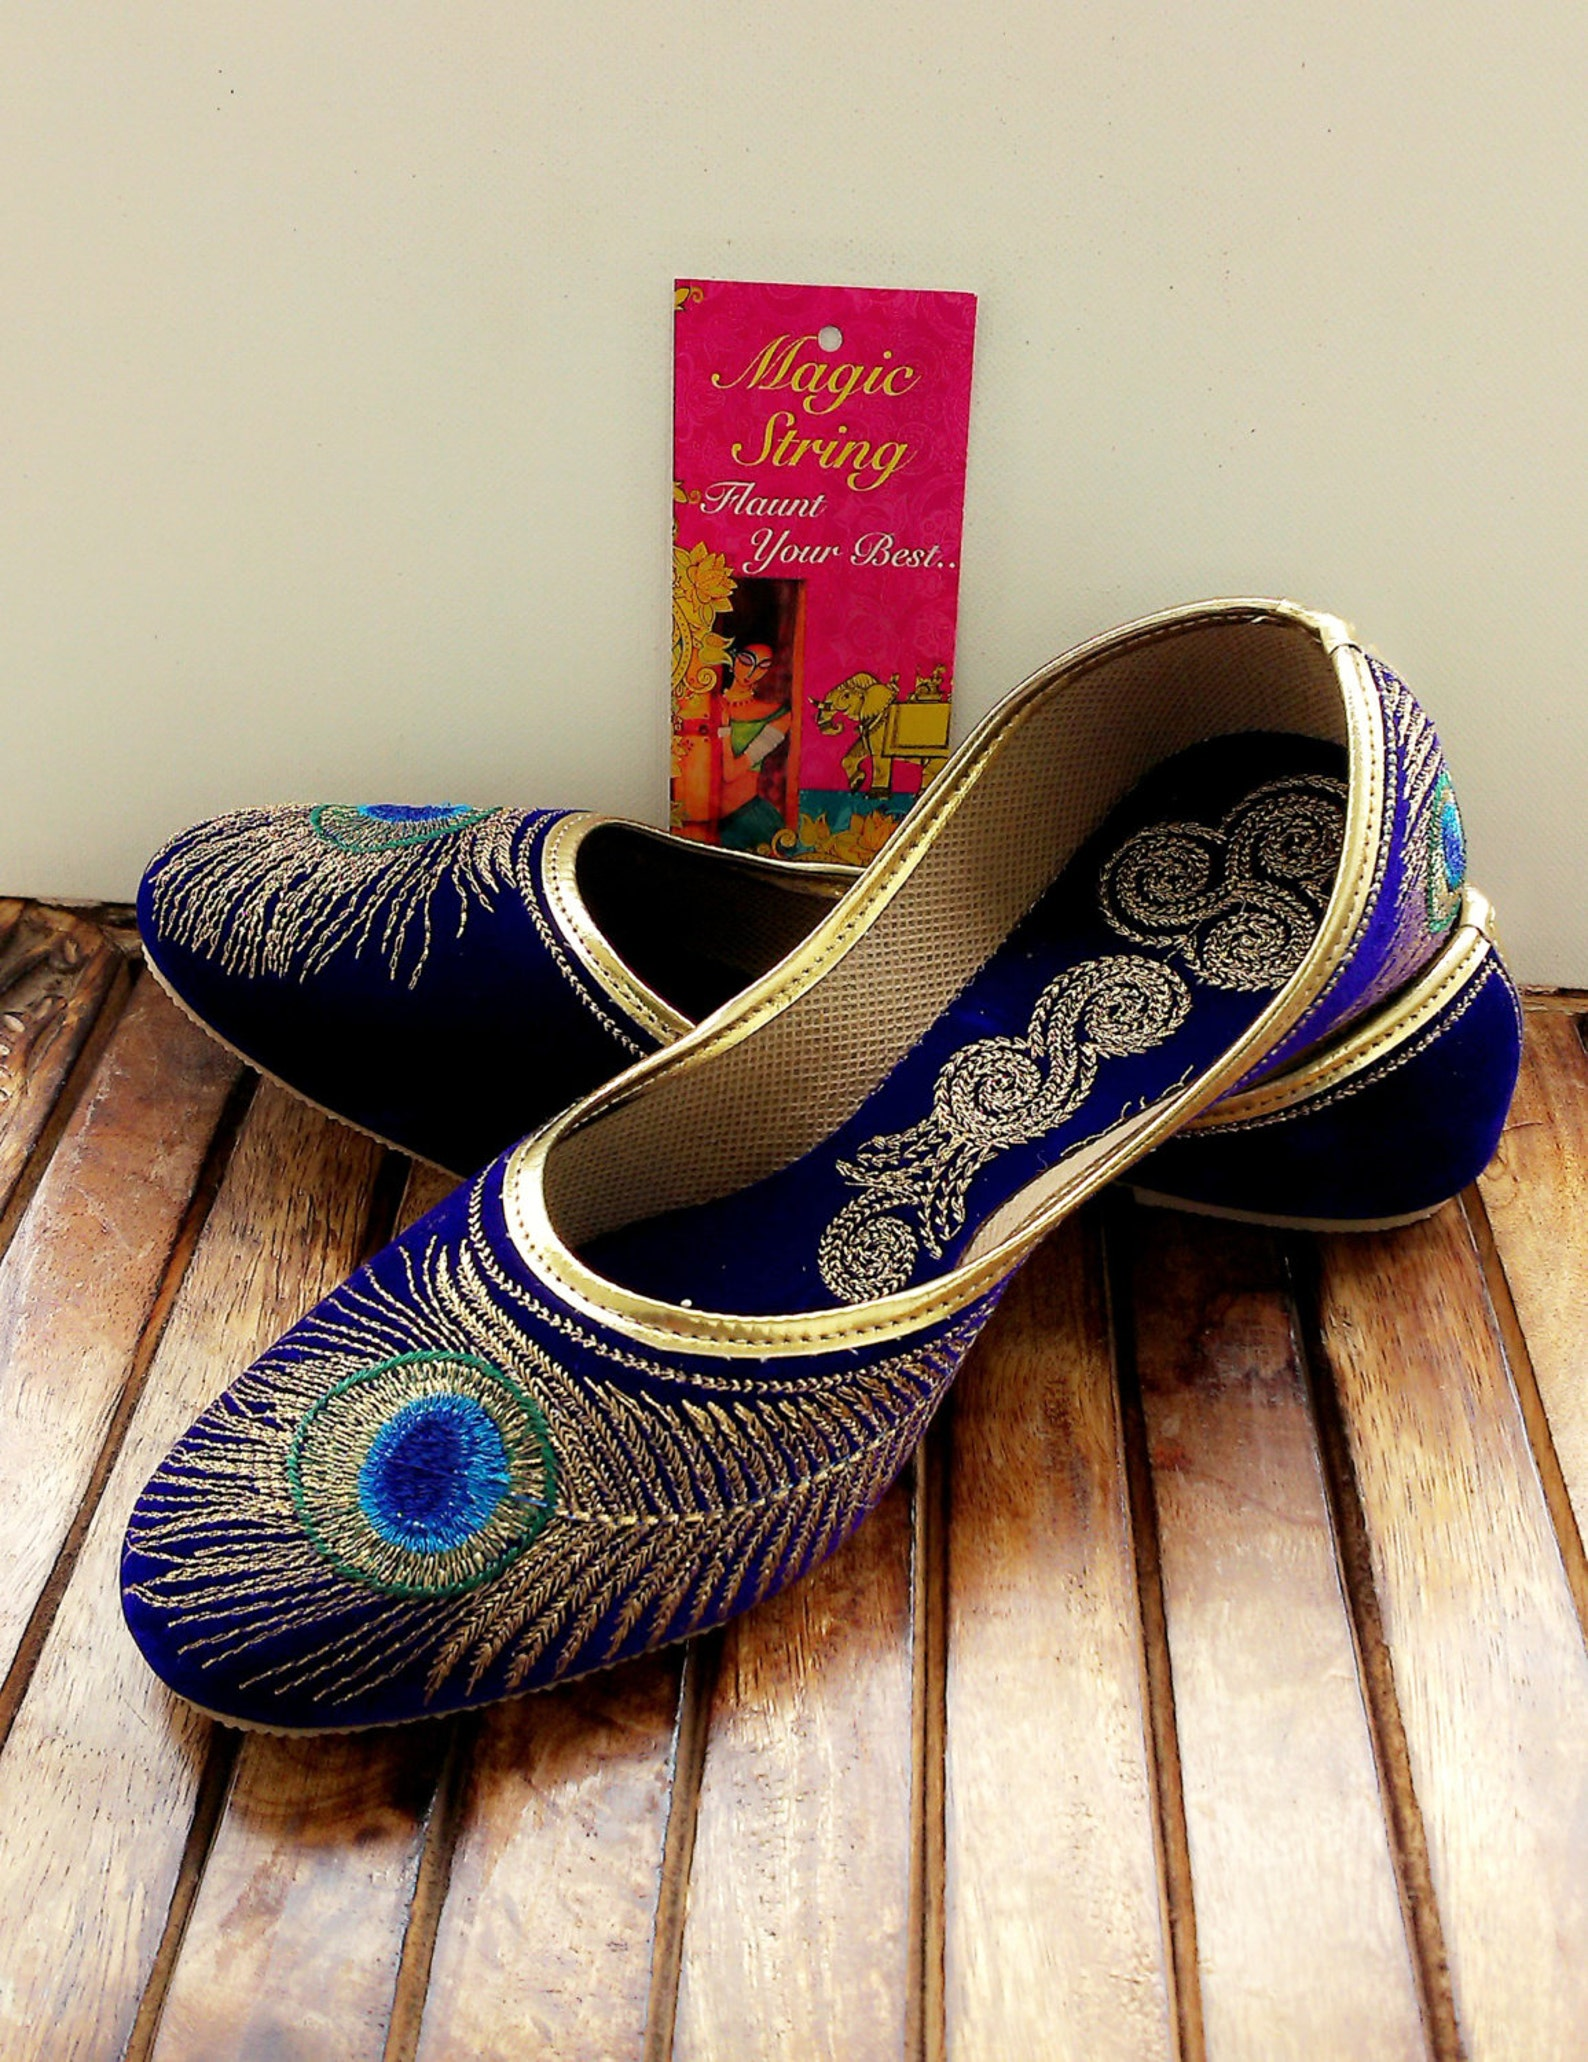 50% off us size 6/blue shoe/velvet shoe/gold embroidered designer shoes/blue ballet flats/women shoes/wedding shoes//roya